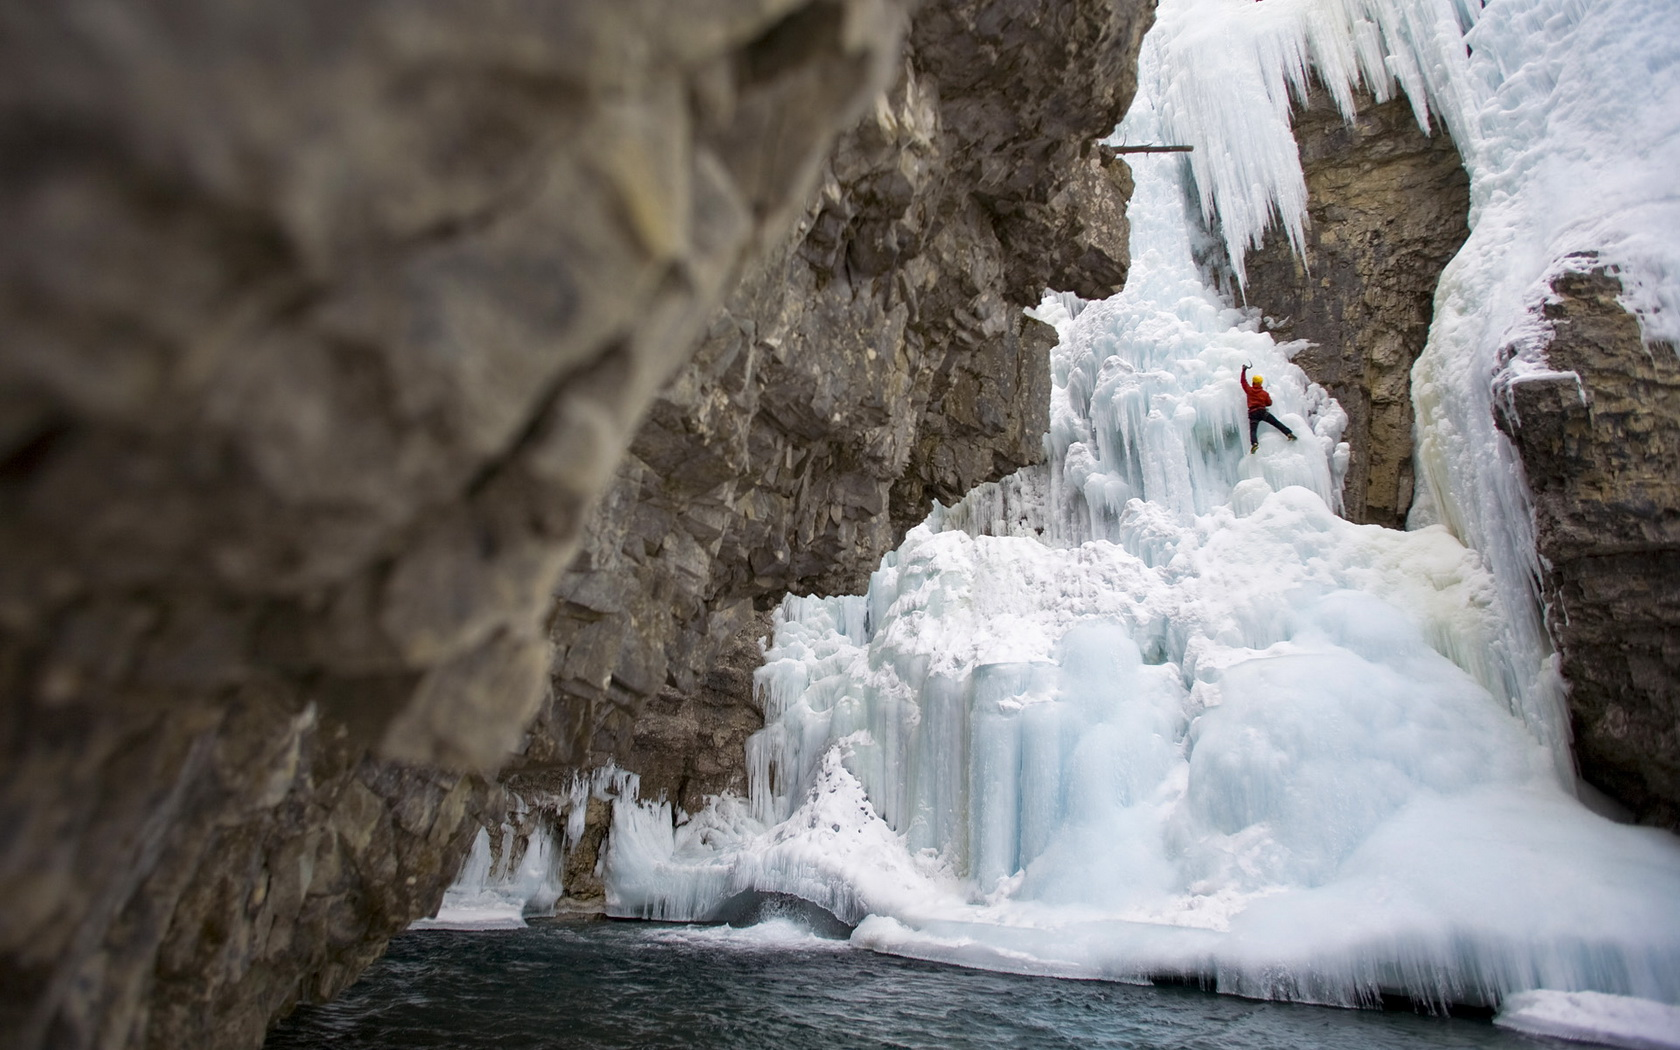 ice climbing wallpaper - photo #14